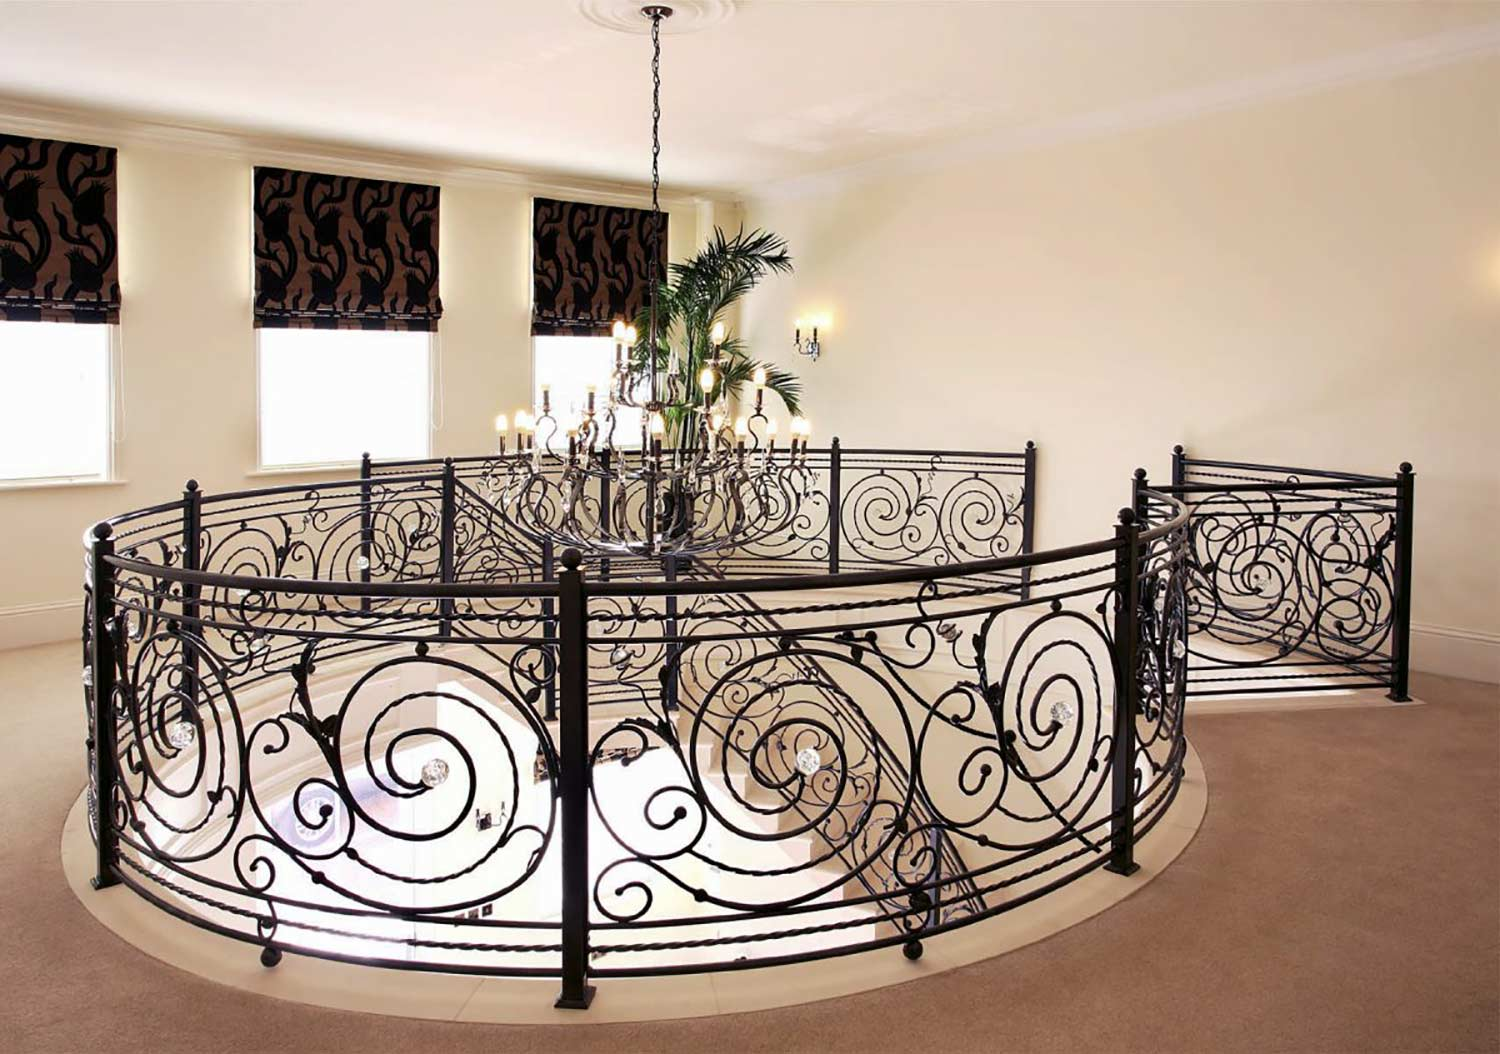 staircases flourished swirls and spirals - overwrought - metal staircase railing